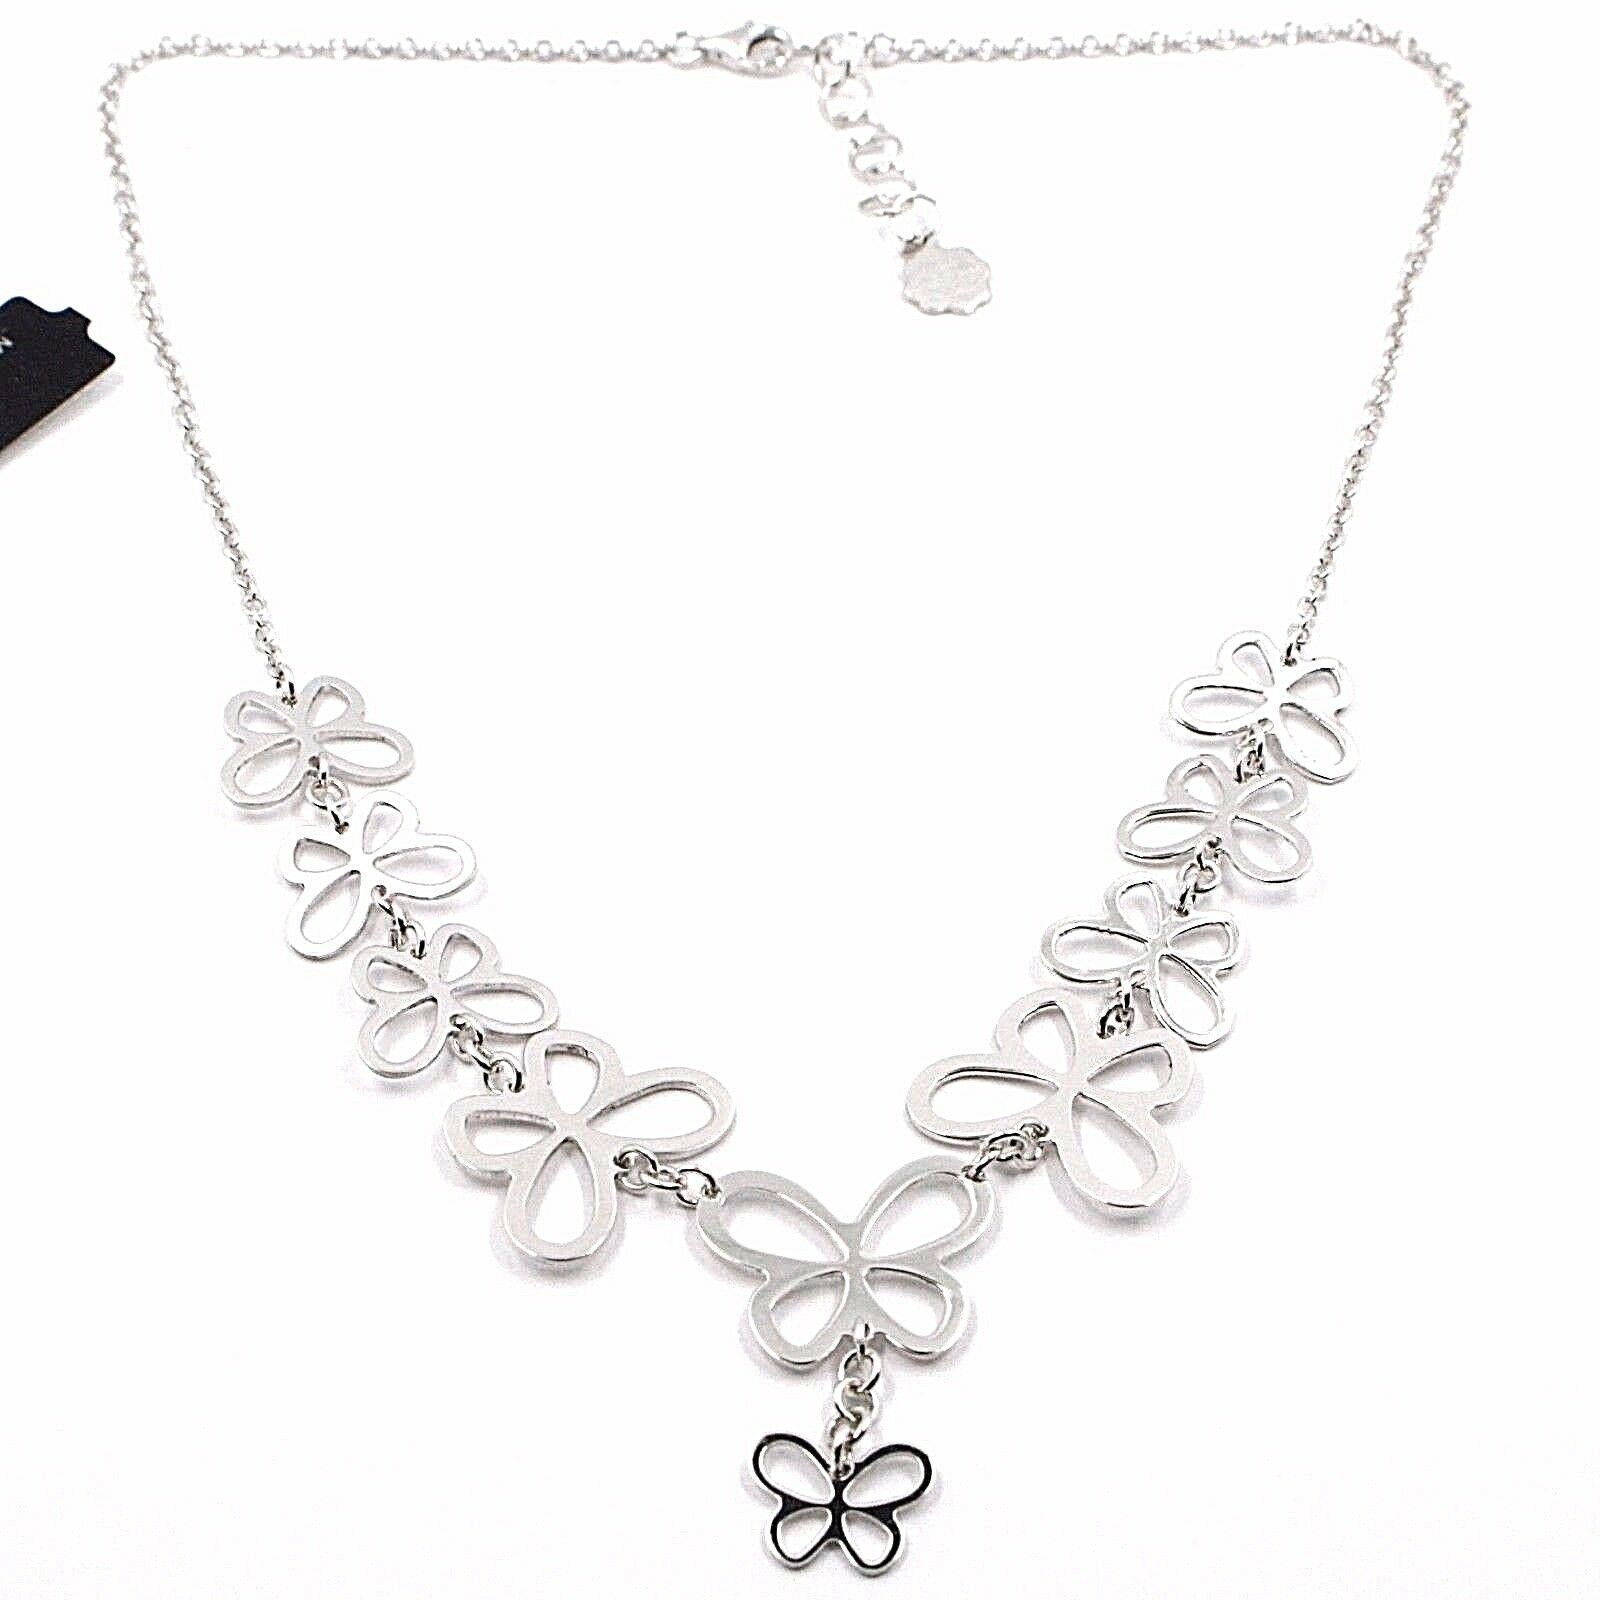 Silver 925 Necklace, Row of Butterflies, by Mary Jane Ielpo , Made in Italy